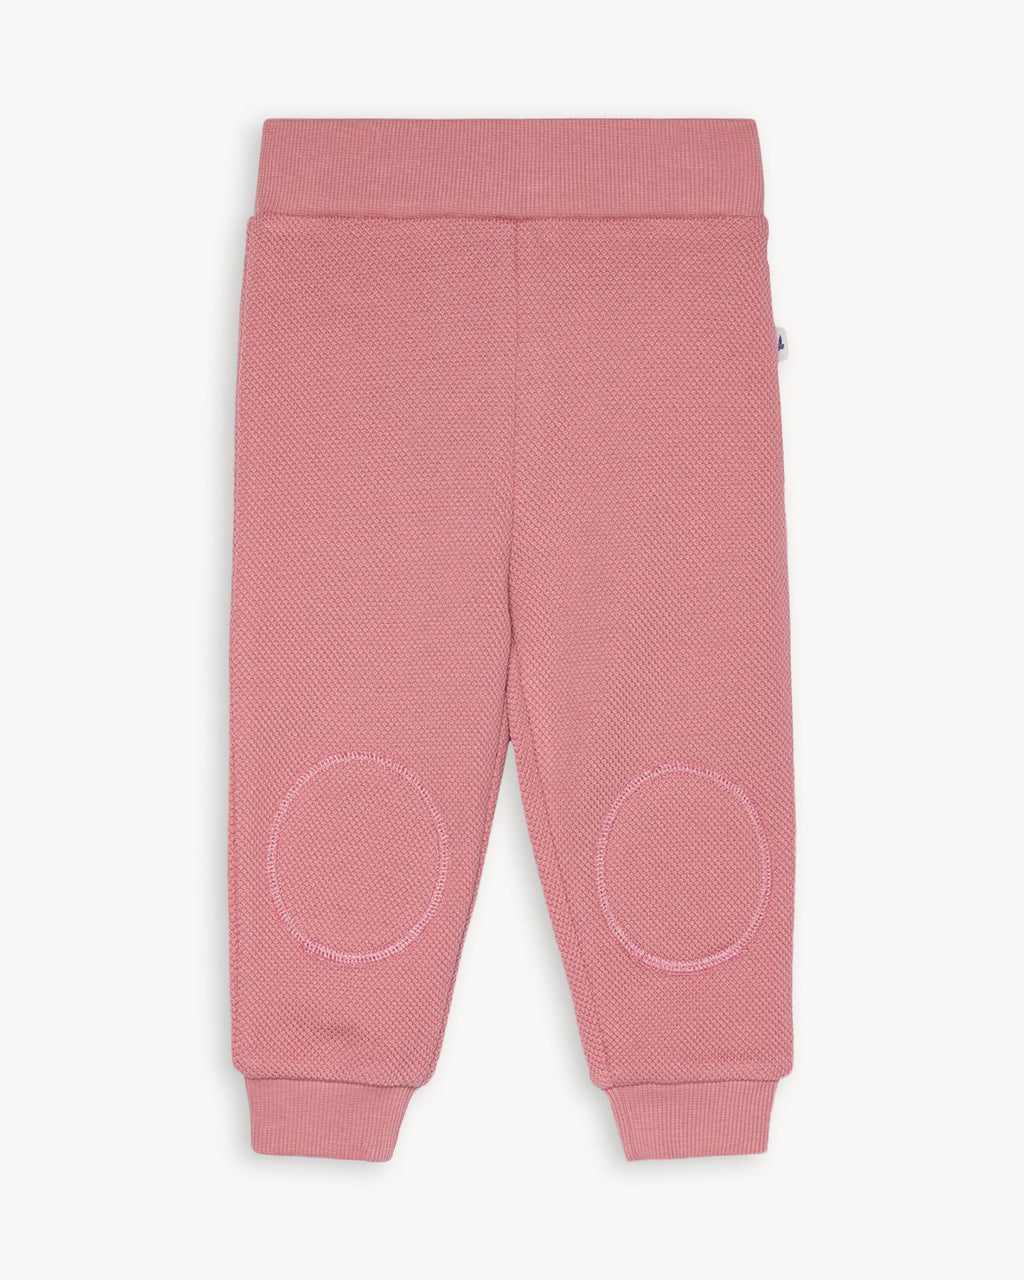 variant_1 | EN Dusty Rose Pink Sweatpants for Kids and Baby with pads on knees | DE Rosa Pink Hose mit Patches am Knie für Baby und Kinder